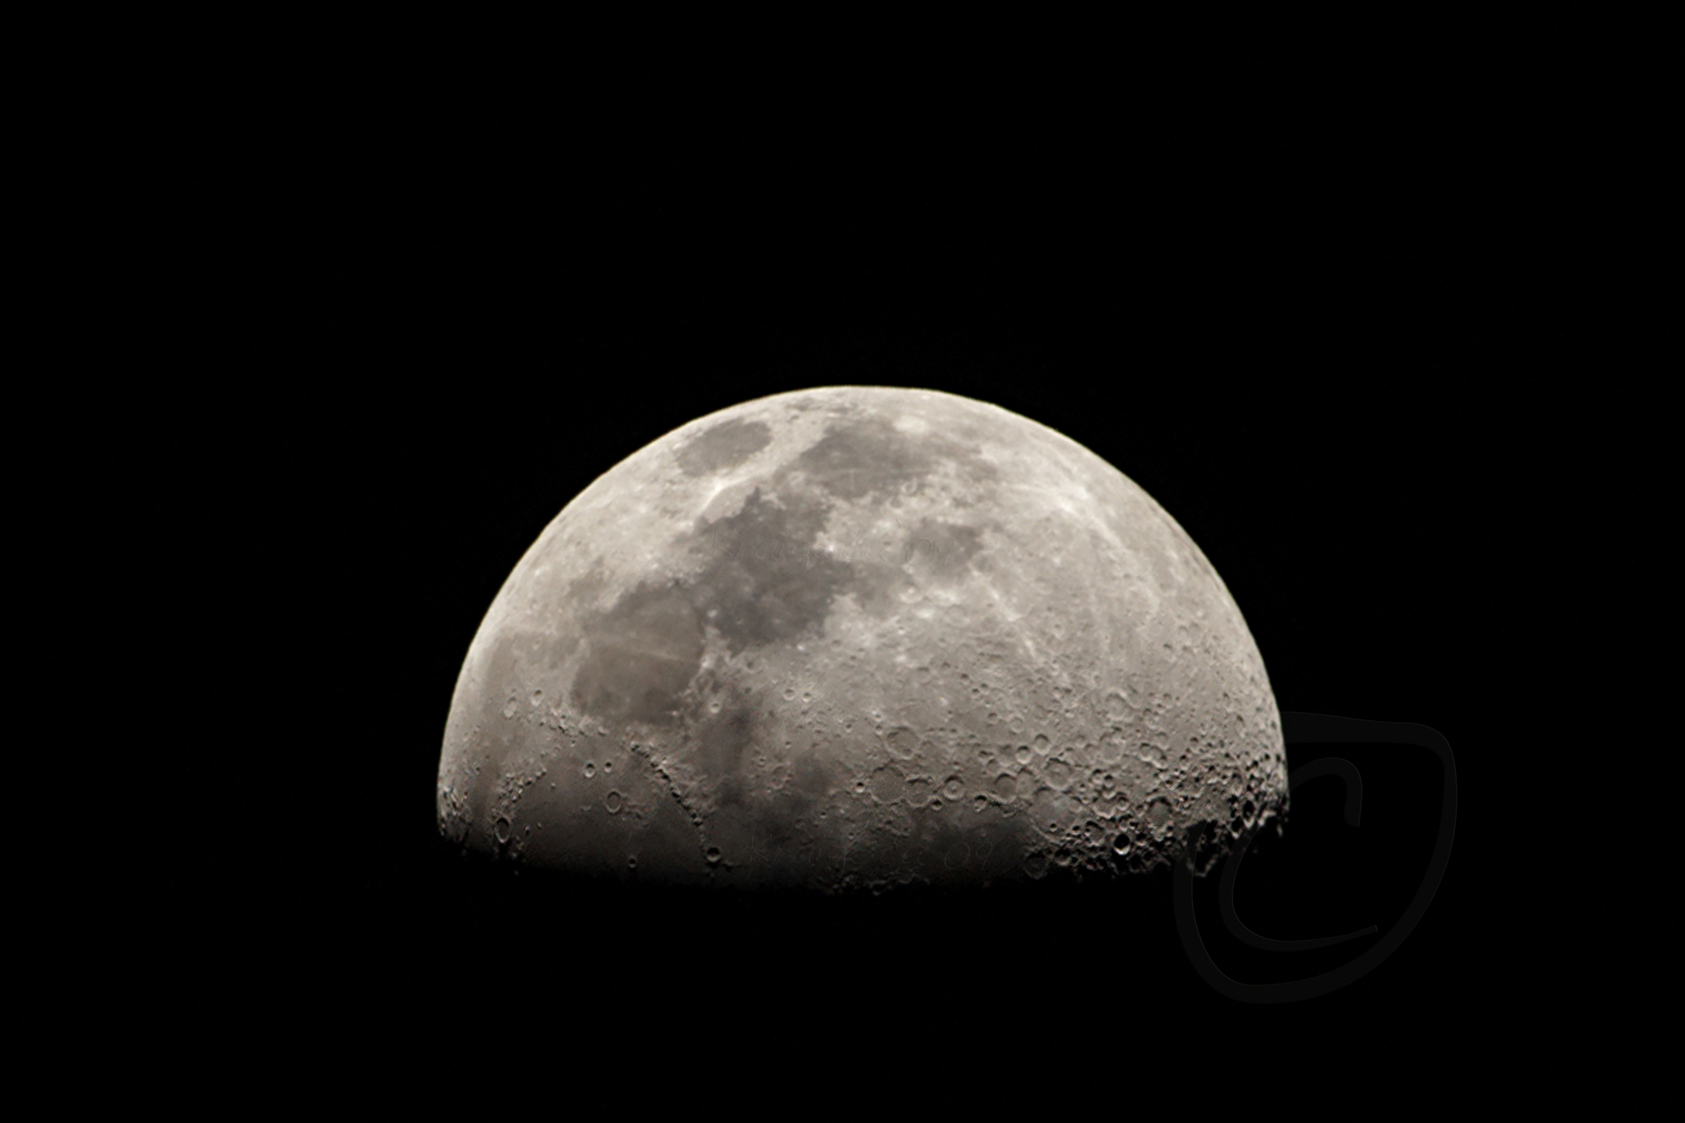 side of the moon - photo #27